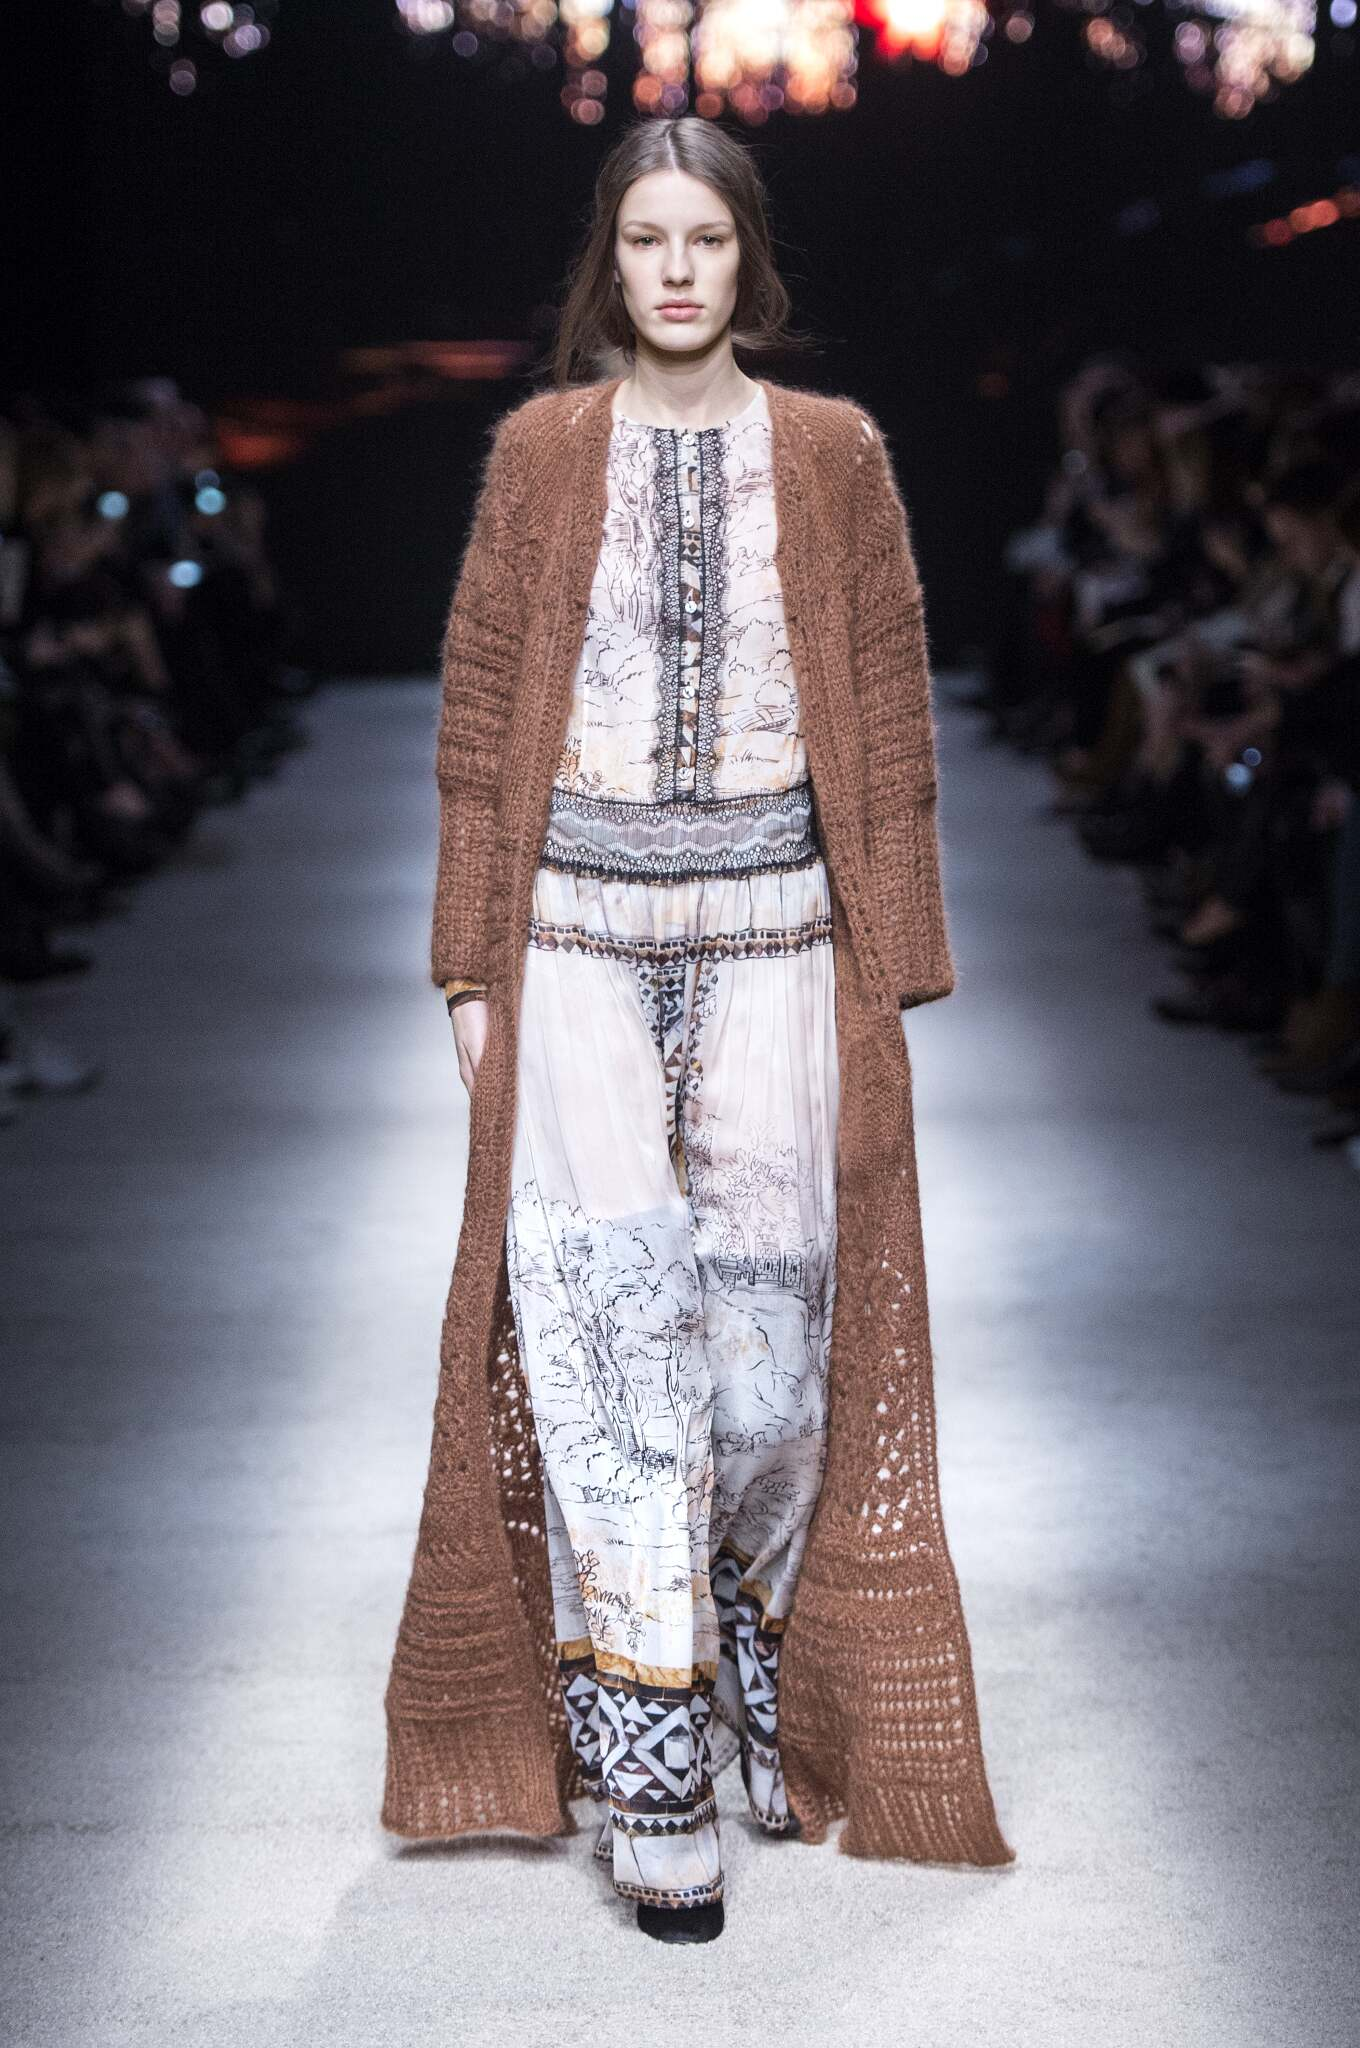 Catwalk Alberta Ferretti Womenswear Collection Winter 2015